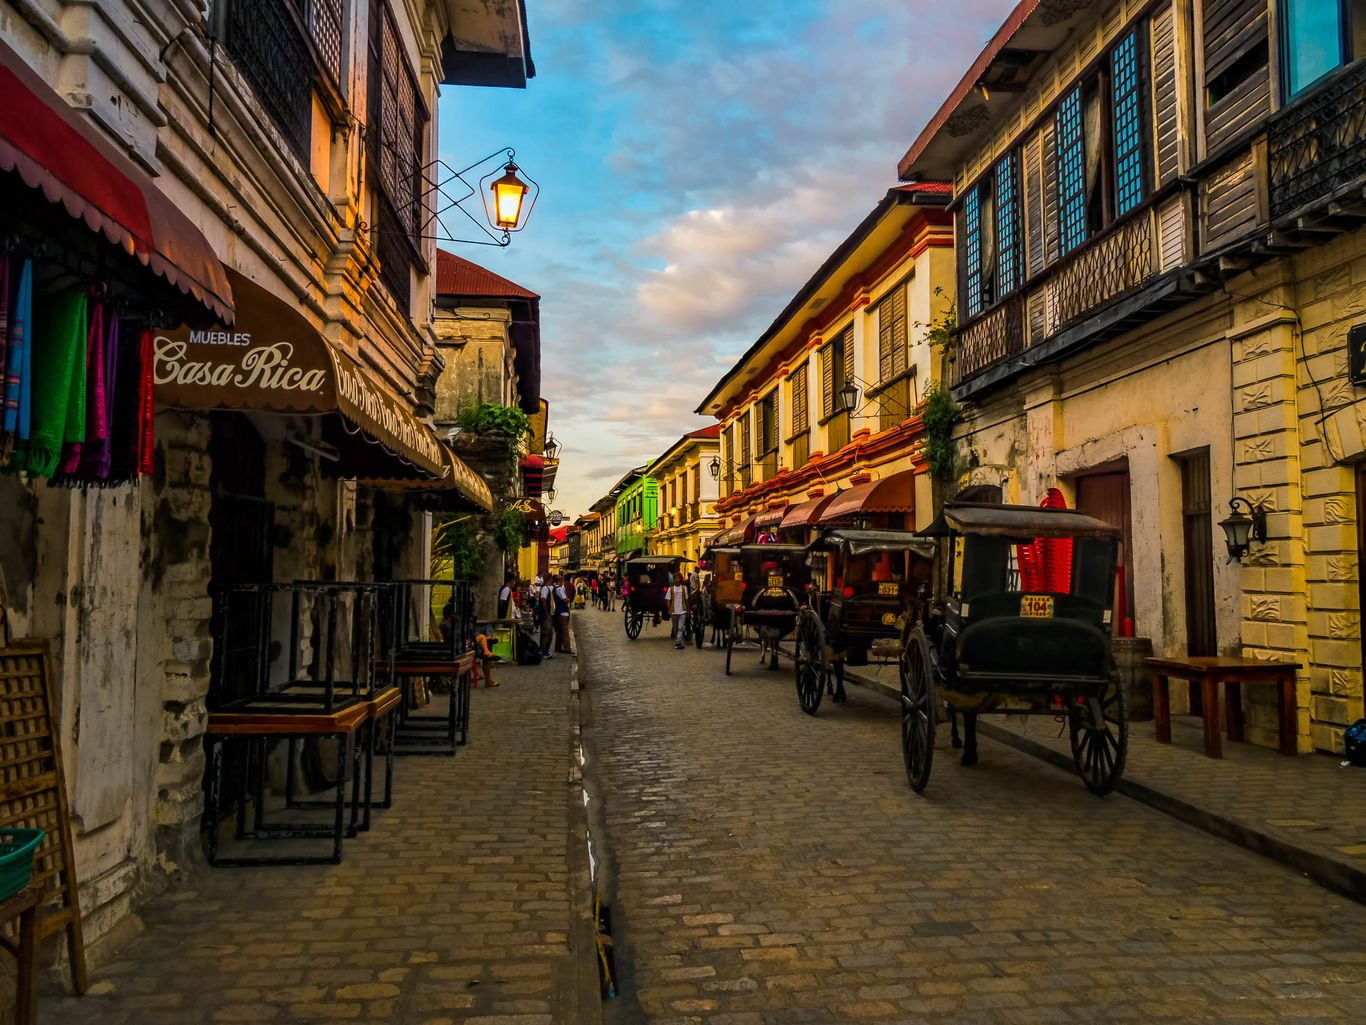 Horse-drawn carriages lined up on a cobblestone street bounded on either hand by old brick and wood houses at the Historic City of Vigan, one of the UNESCO World Heritage Sites in the Philippines